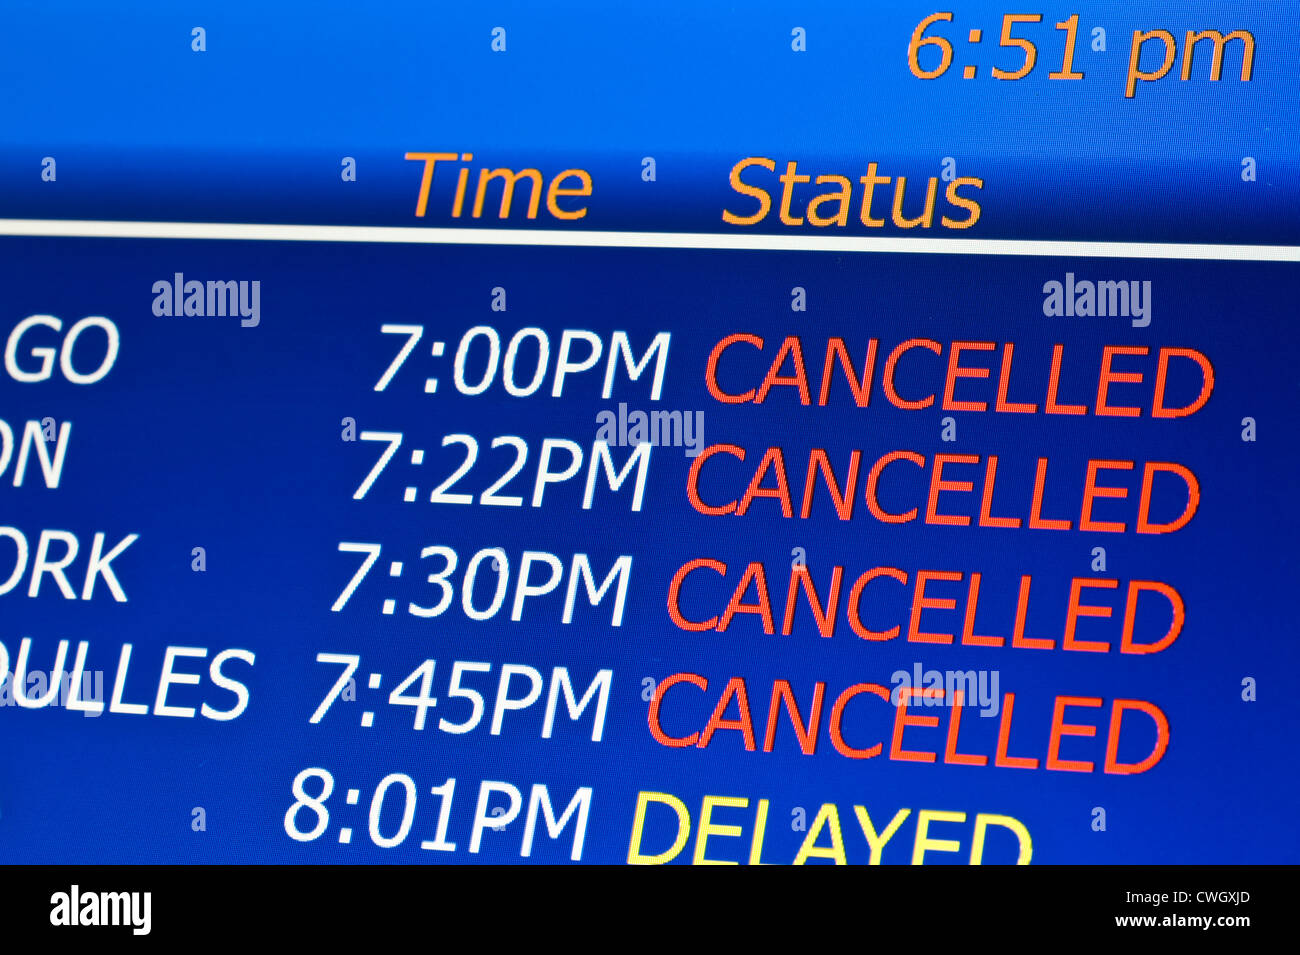 Cancelled flights at airport - Stock Image